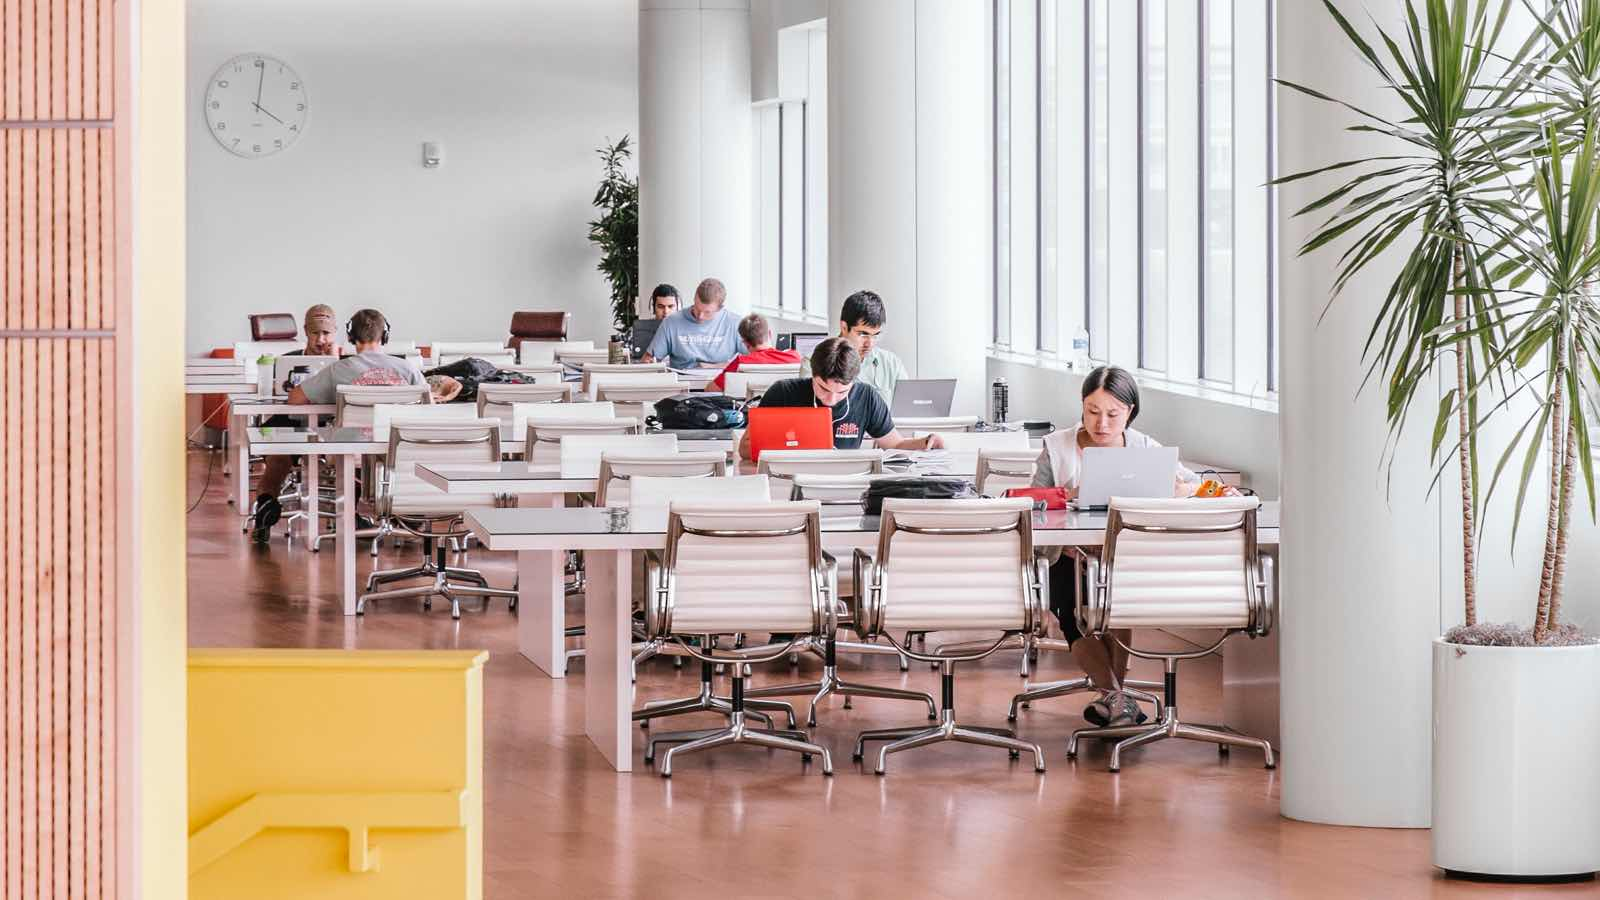 Rows of minimal white tables with white leather Eames Aluminum Group chairs in an open concept room with tall windows. Men and women sit on their own with laptops and other studying materials.